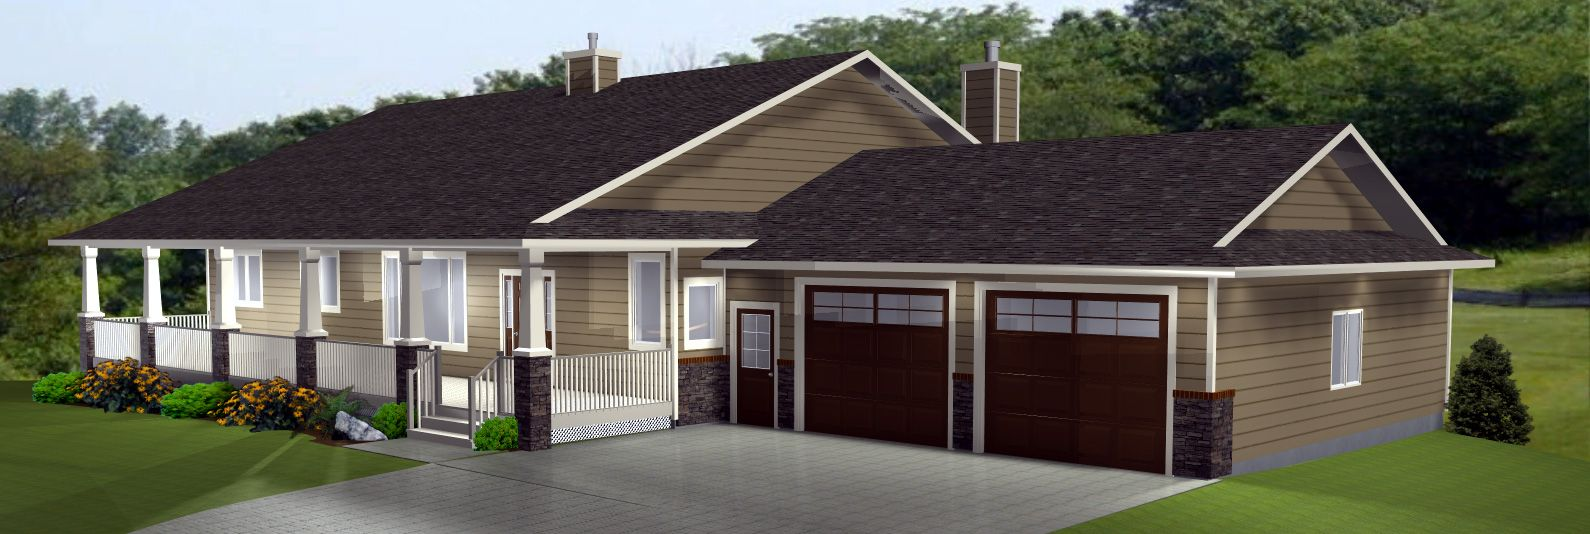 cool ranch style house additions. Ranch Style House Plan  3 Beds 2 00 Baths 1924 Sq Ft 427 6 style house and